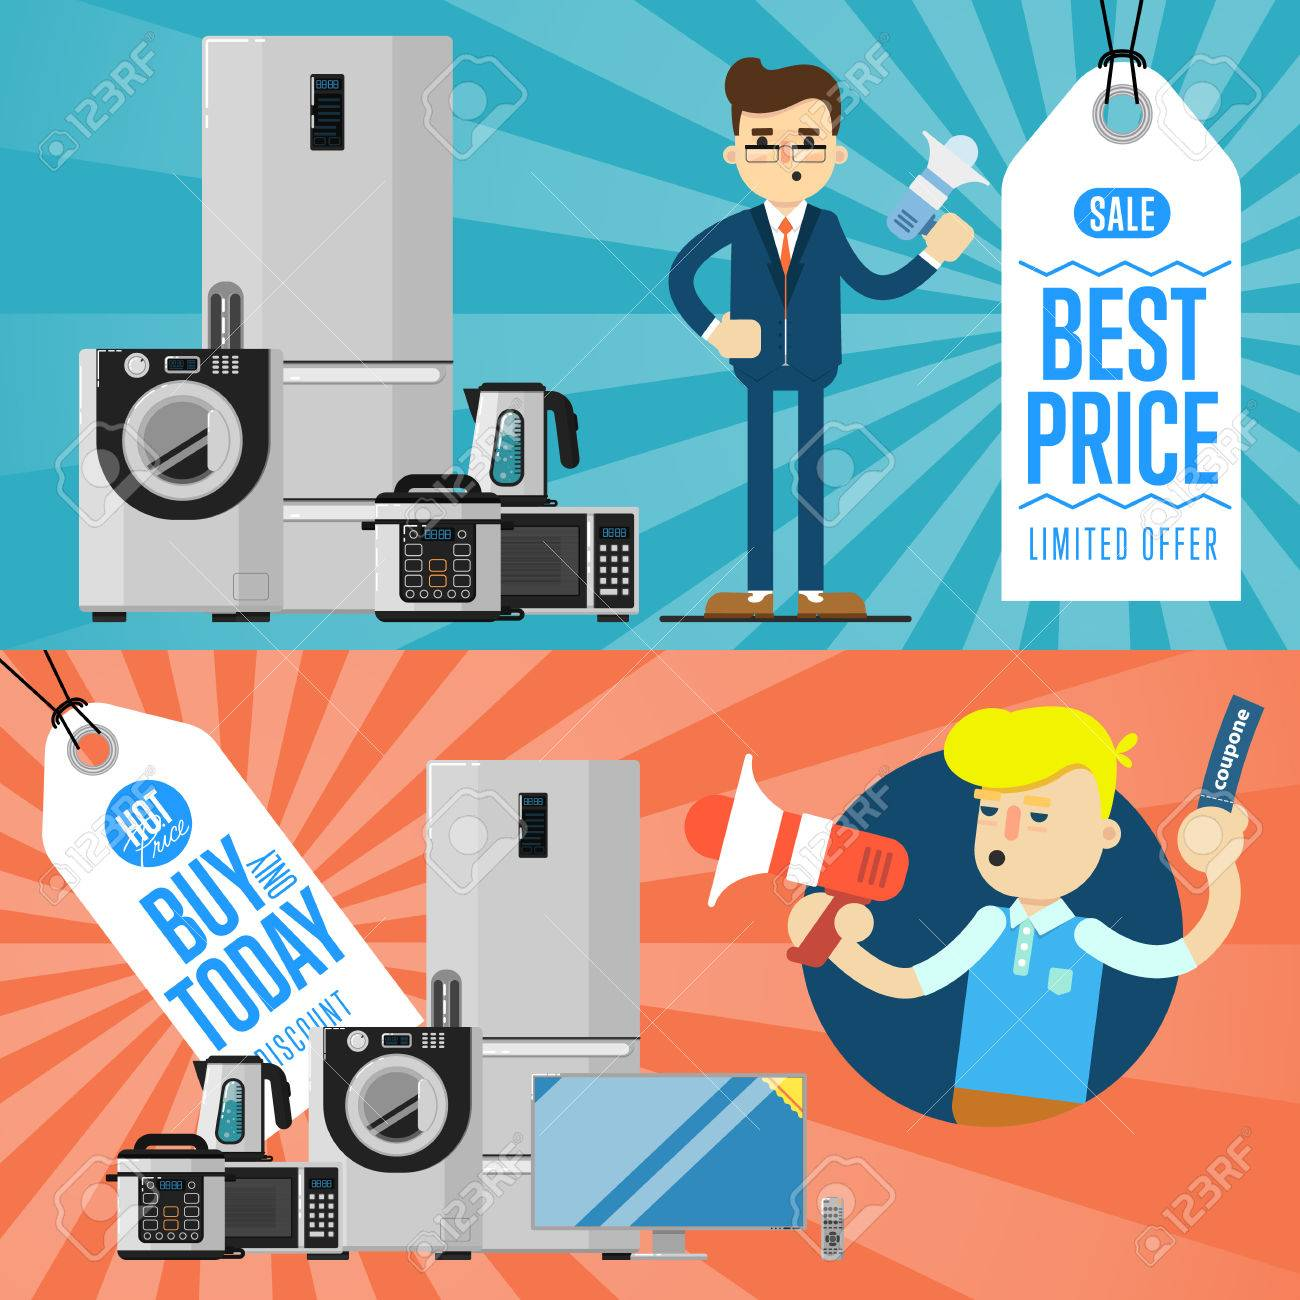 Best Prise And Buy Today Flyers With Household Appliances Vector ...